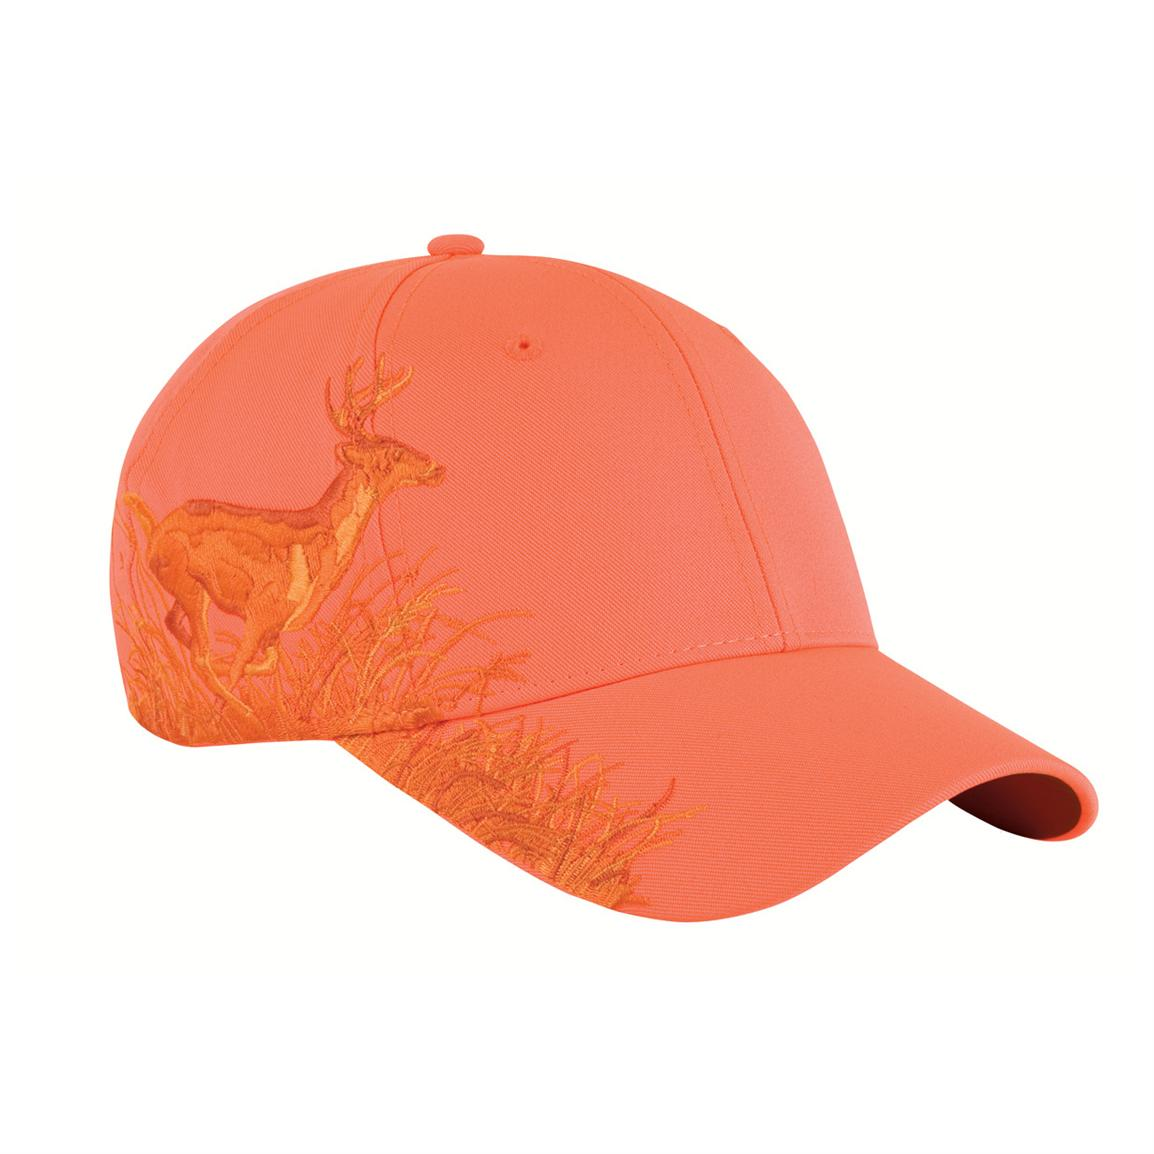 DRI DUCK® Blaze Buck Wildlife Cap